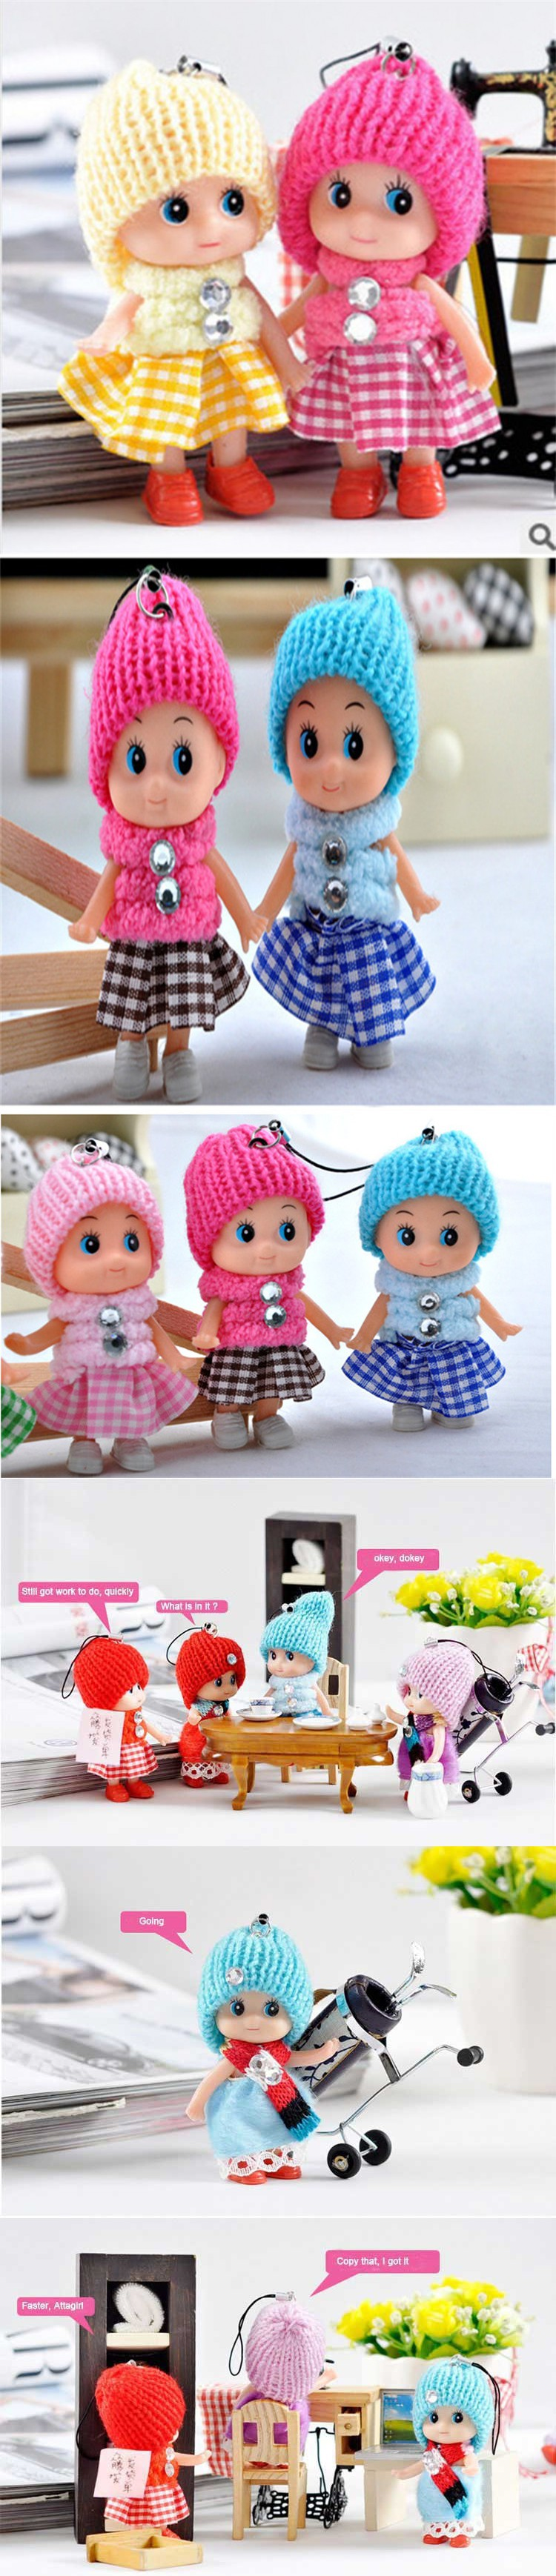 Kids Toys Soft Interactive Baby Dolls Toy Mini Doll For Girls